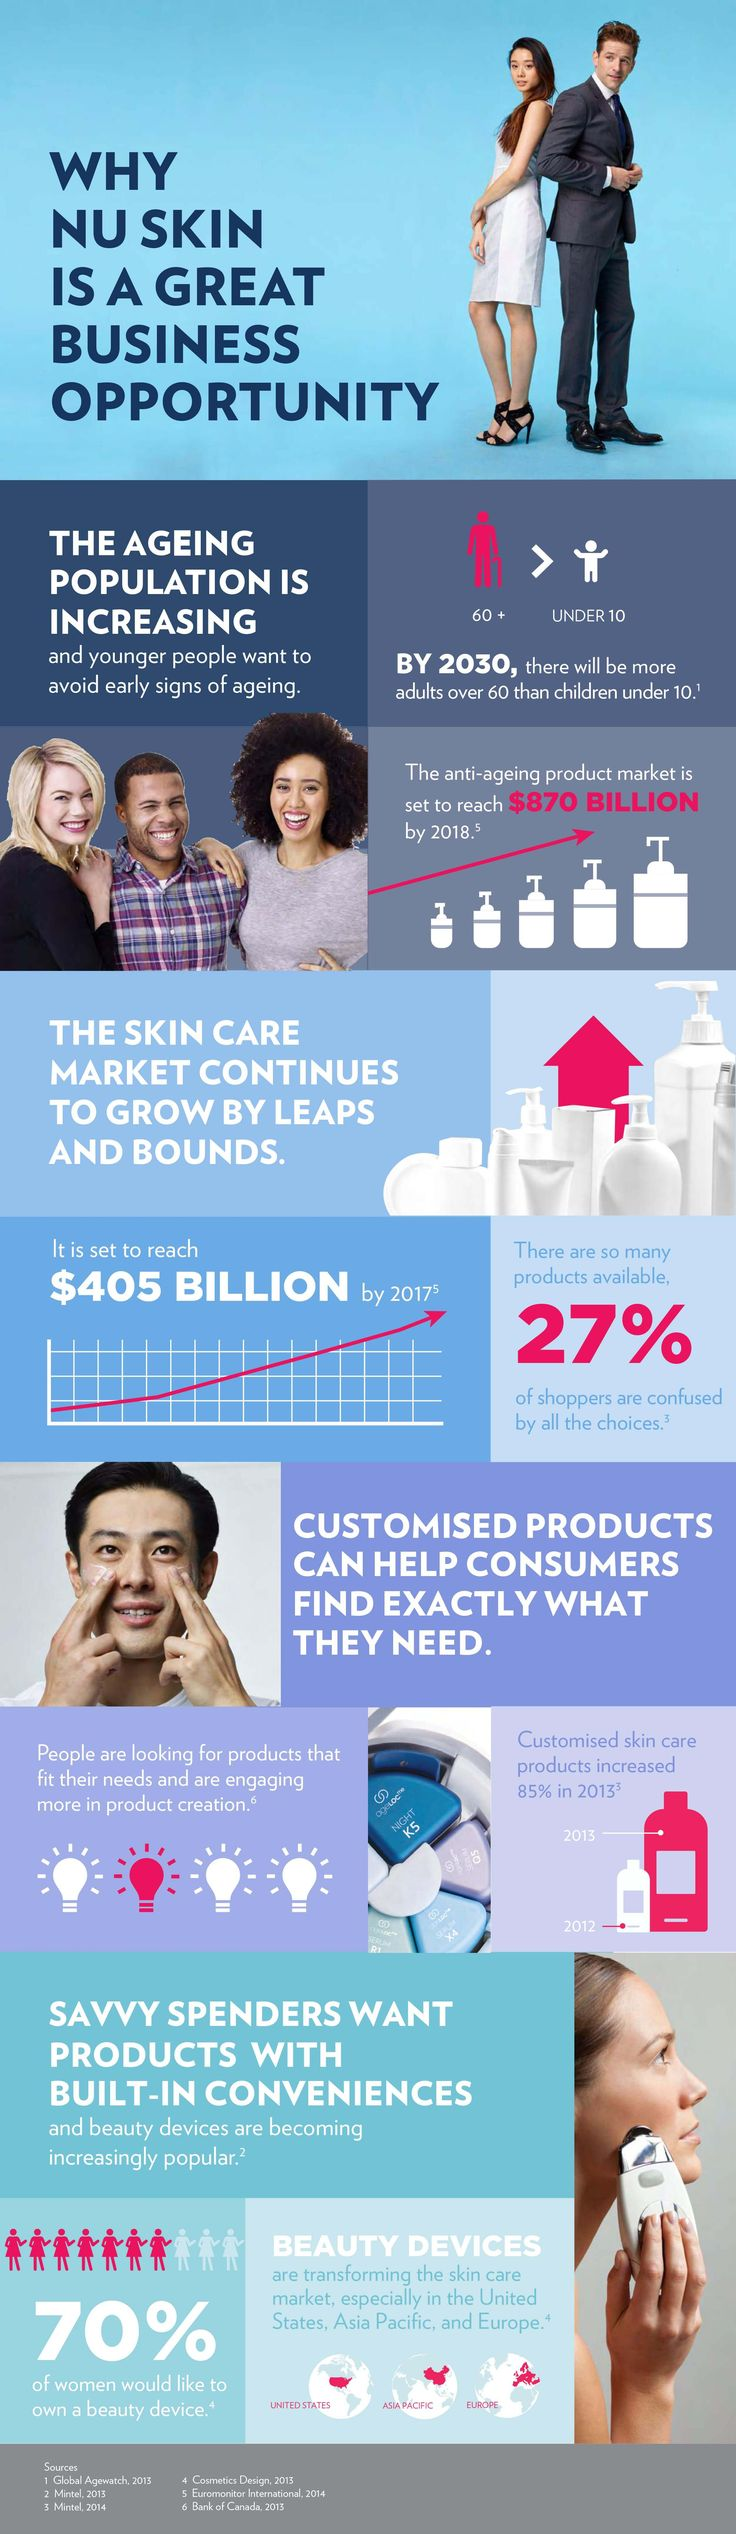 Personalise your skincare, get involved in the fastest growing industry worldwide! #skincare #antiageing #nuskin #businessopportunity #personaliseddevices #healthtechnology Contact your personal nuskin distributor Wiki Wikaira Distributor ID NZ00017837 email: wiksy@ymail.com